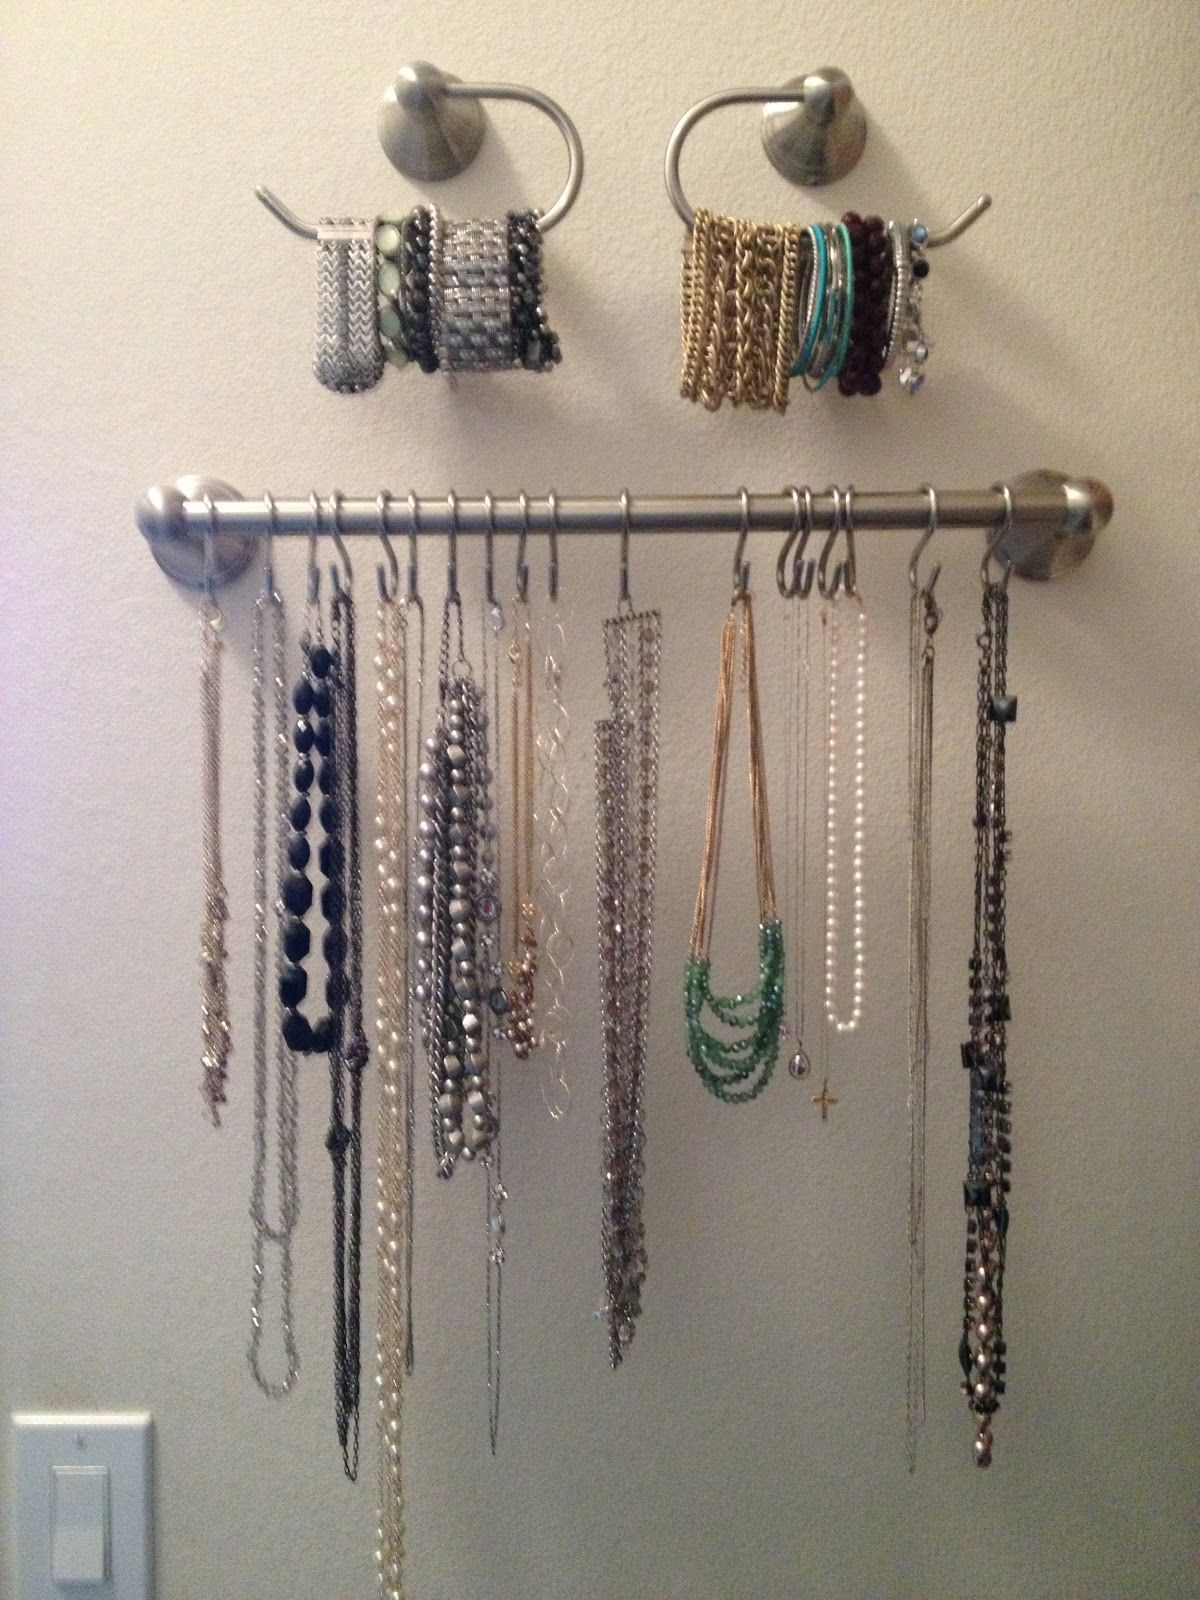 Overthrow Martha DIY Closet Organization and Jewelry Storage DIY